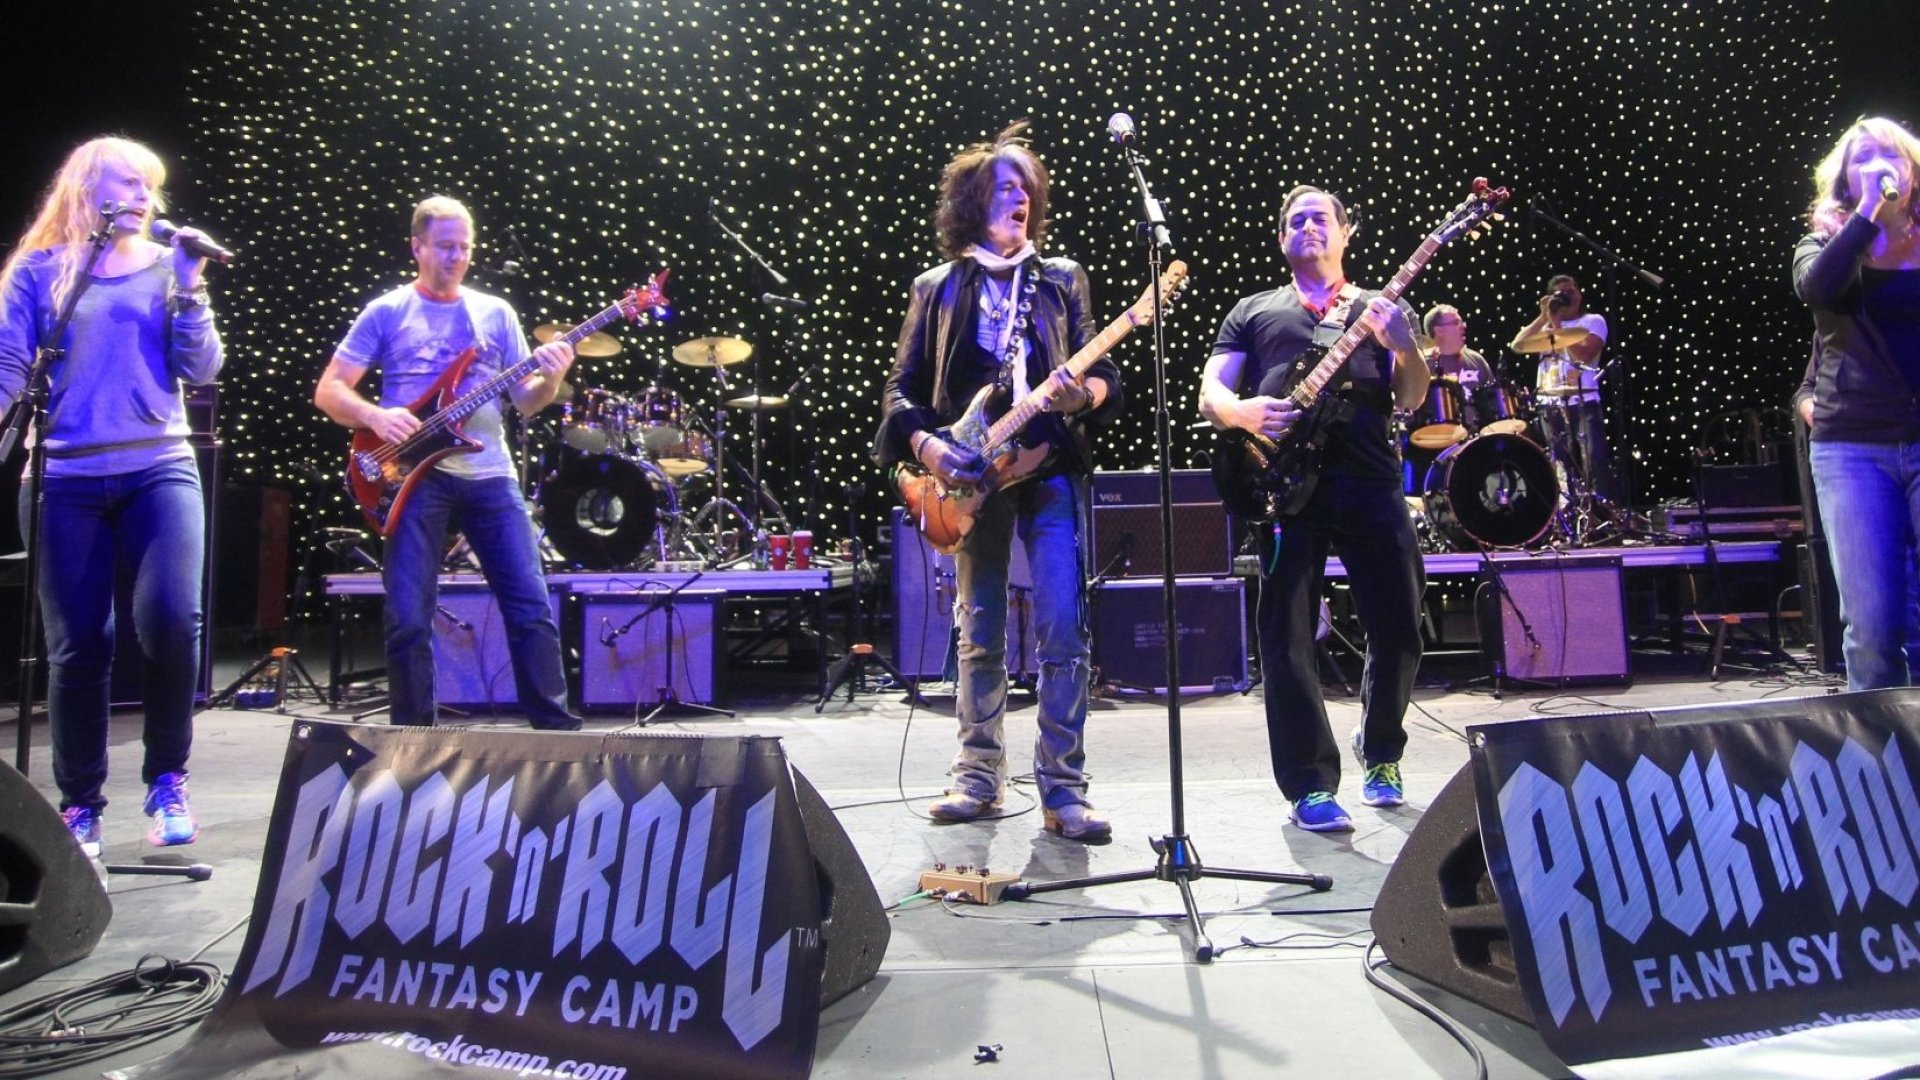 This Entrepreneur Makes Dreams Come True: David Fishof, Founder of Rock and Roll Fantasy Camp